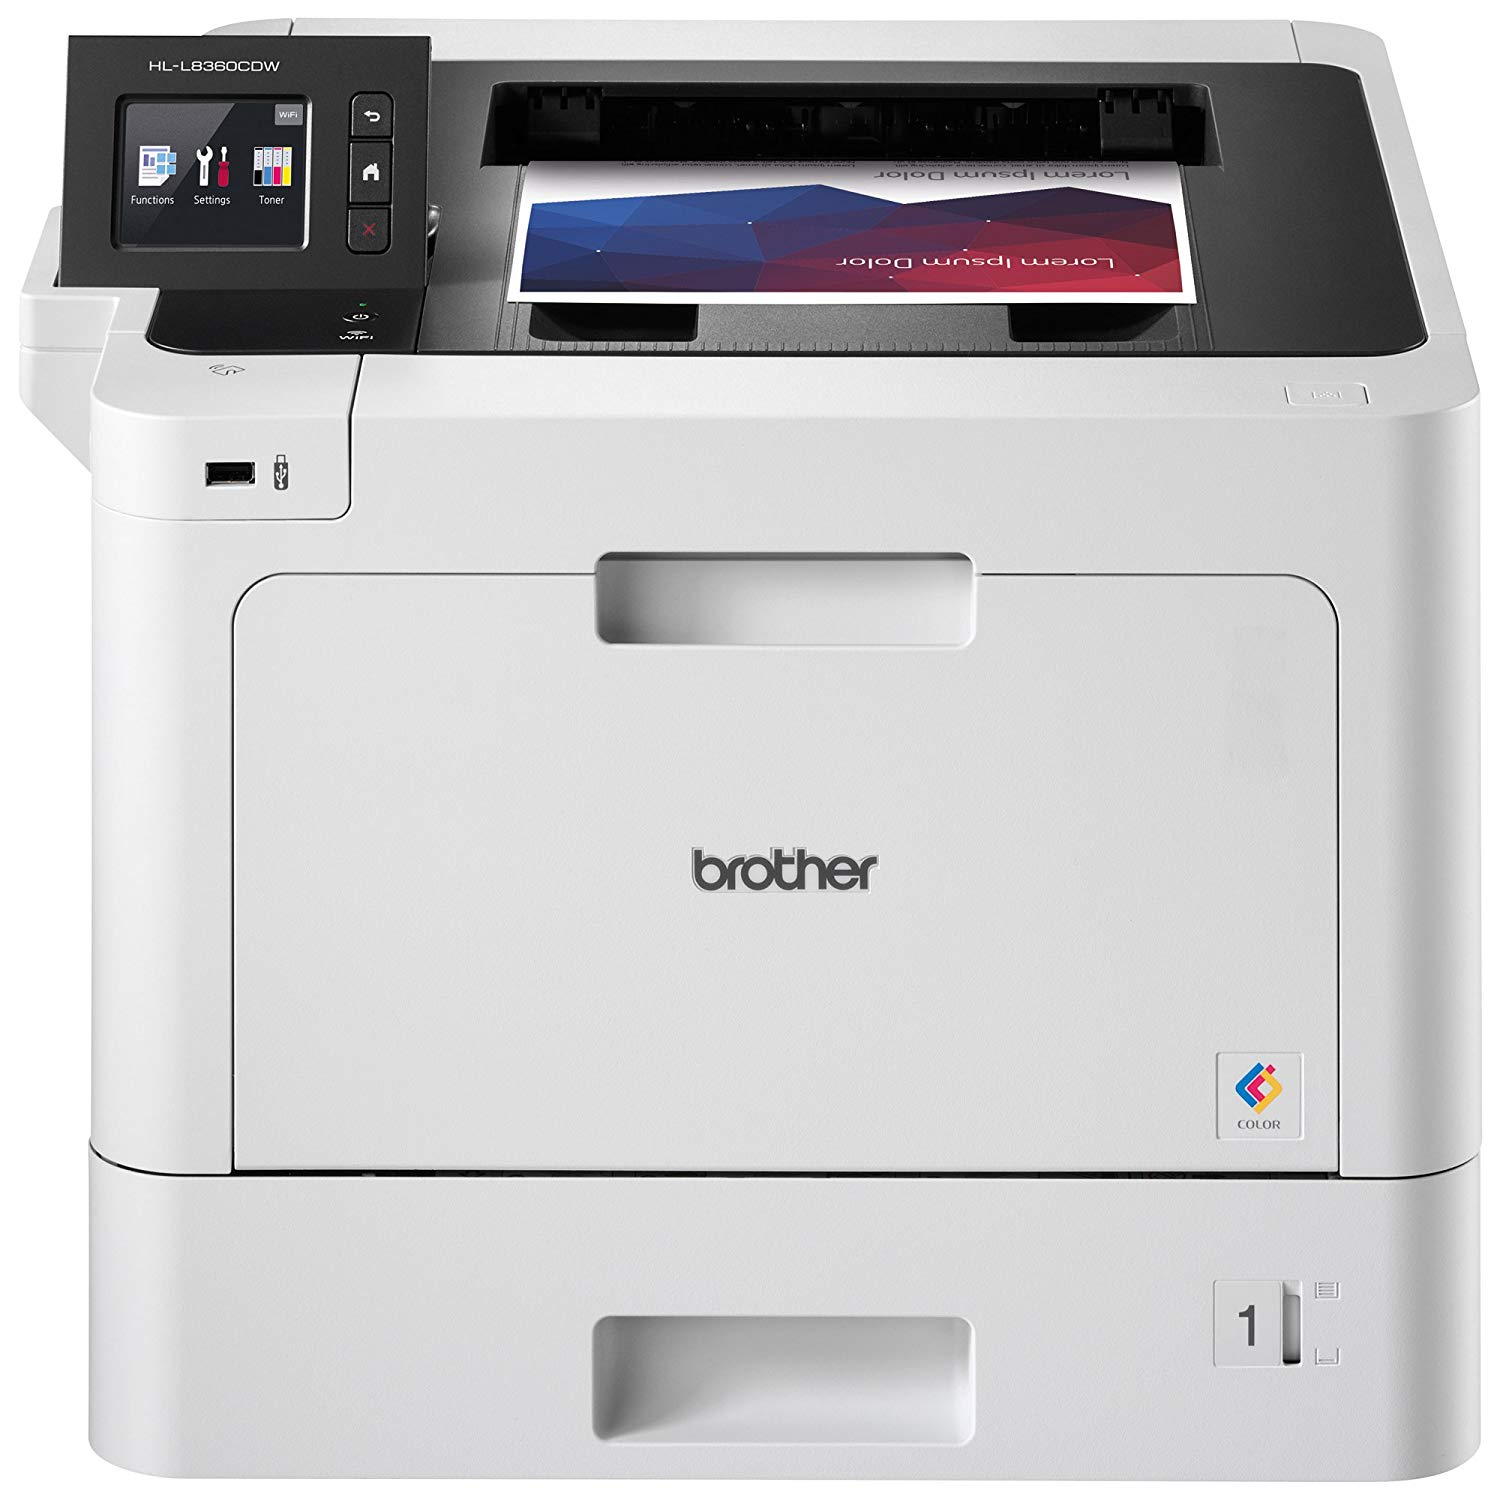 Brother HL-L8360CDW Color Laser Printer.NOT  Prints in Black AND Color ONLY. DOES NOT   COPY, SCAN OR FAX.  A terrific upgrade to the simple Monotone Brother Laser Printer with Color. Bit pricey, but an incredible, reliable Laser Toner printer.  Costs around $340